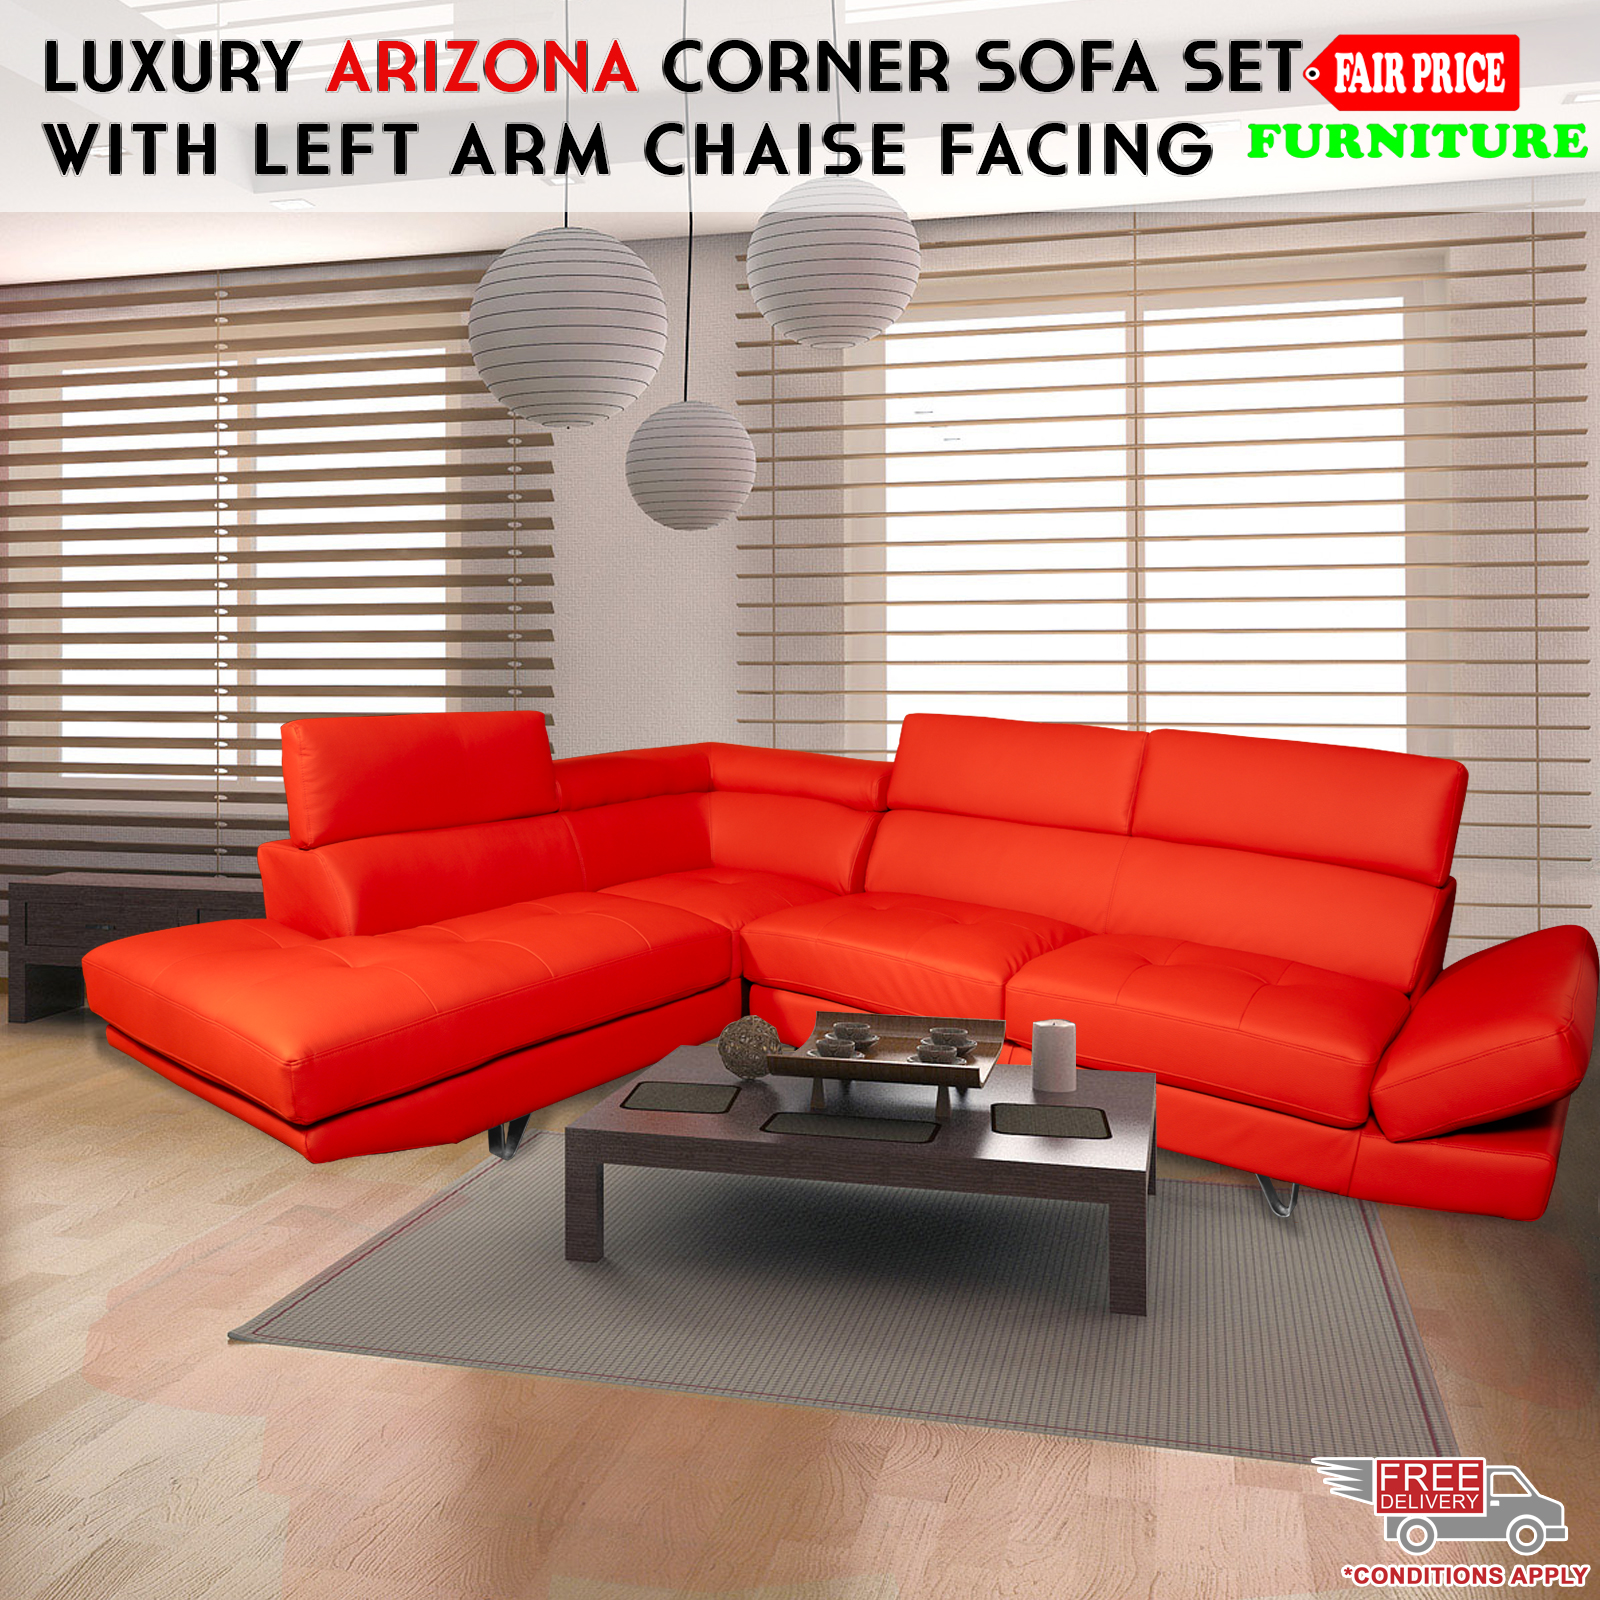 Corner Sofa Set Price In Hyderabad: Luxury Arizona Leather Air Corner Sofa Set W/ Left Arm